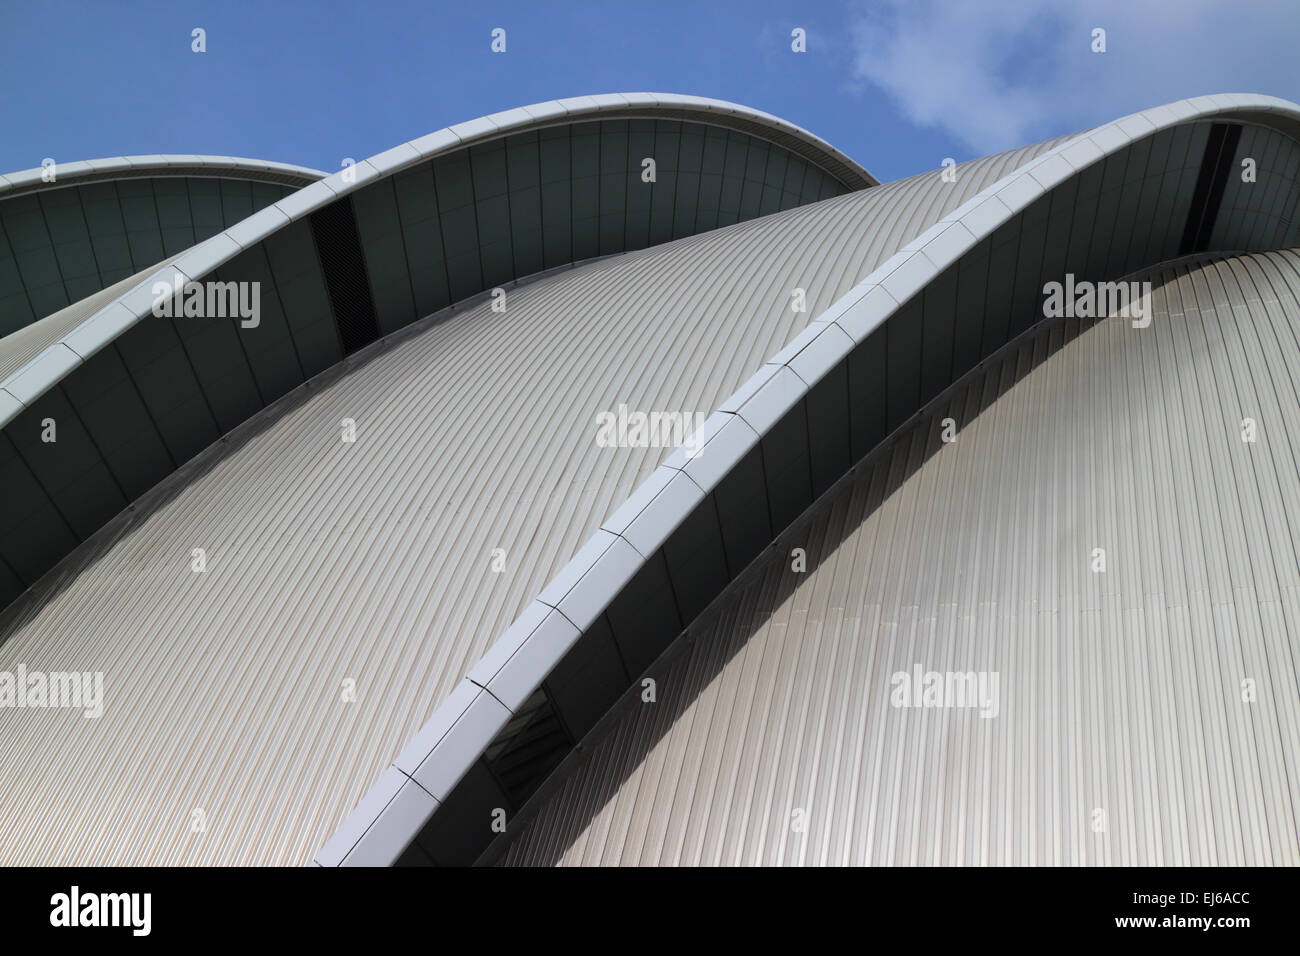 architecture of the clyde auditorium at the secc scottish exhibition and conference centre Glasgow Scotland uk - Stock Image